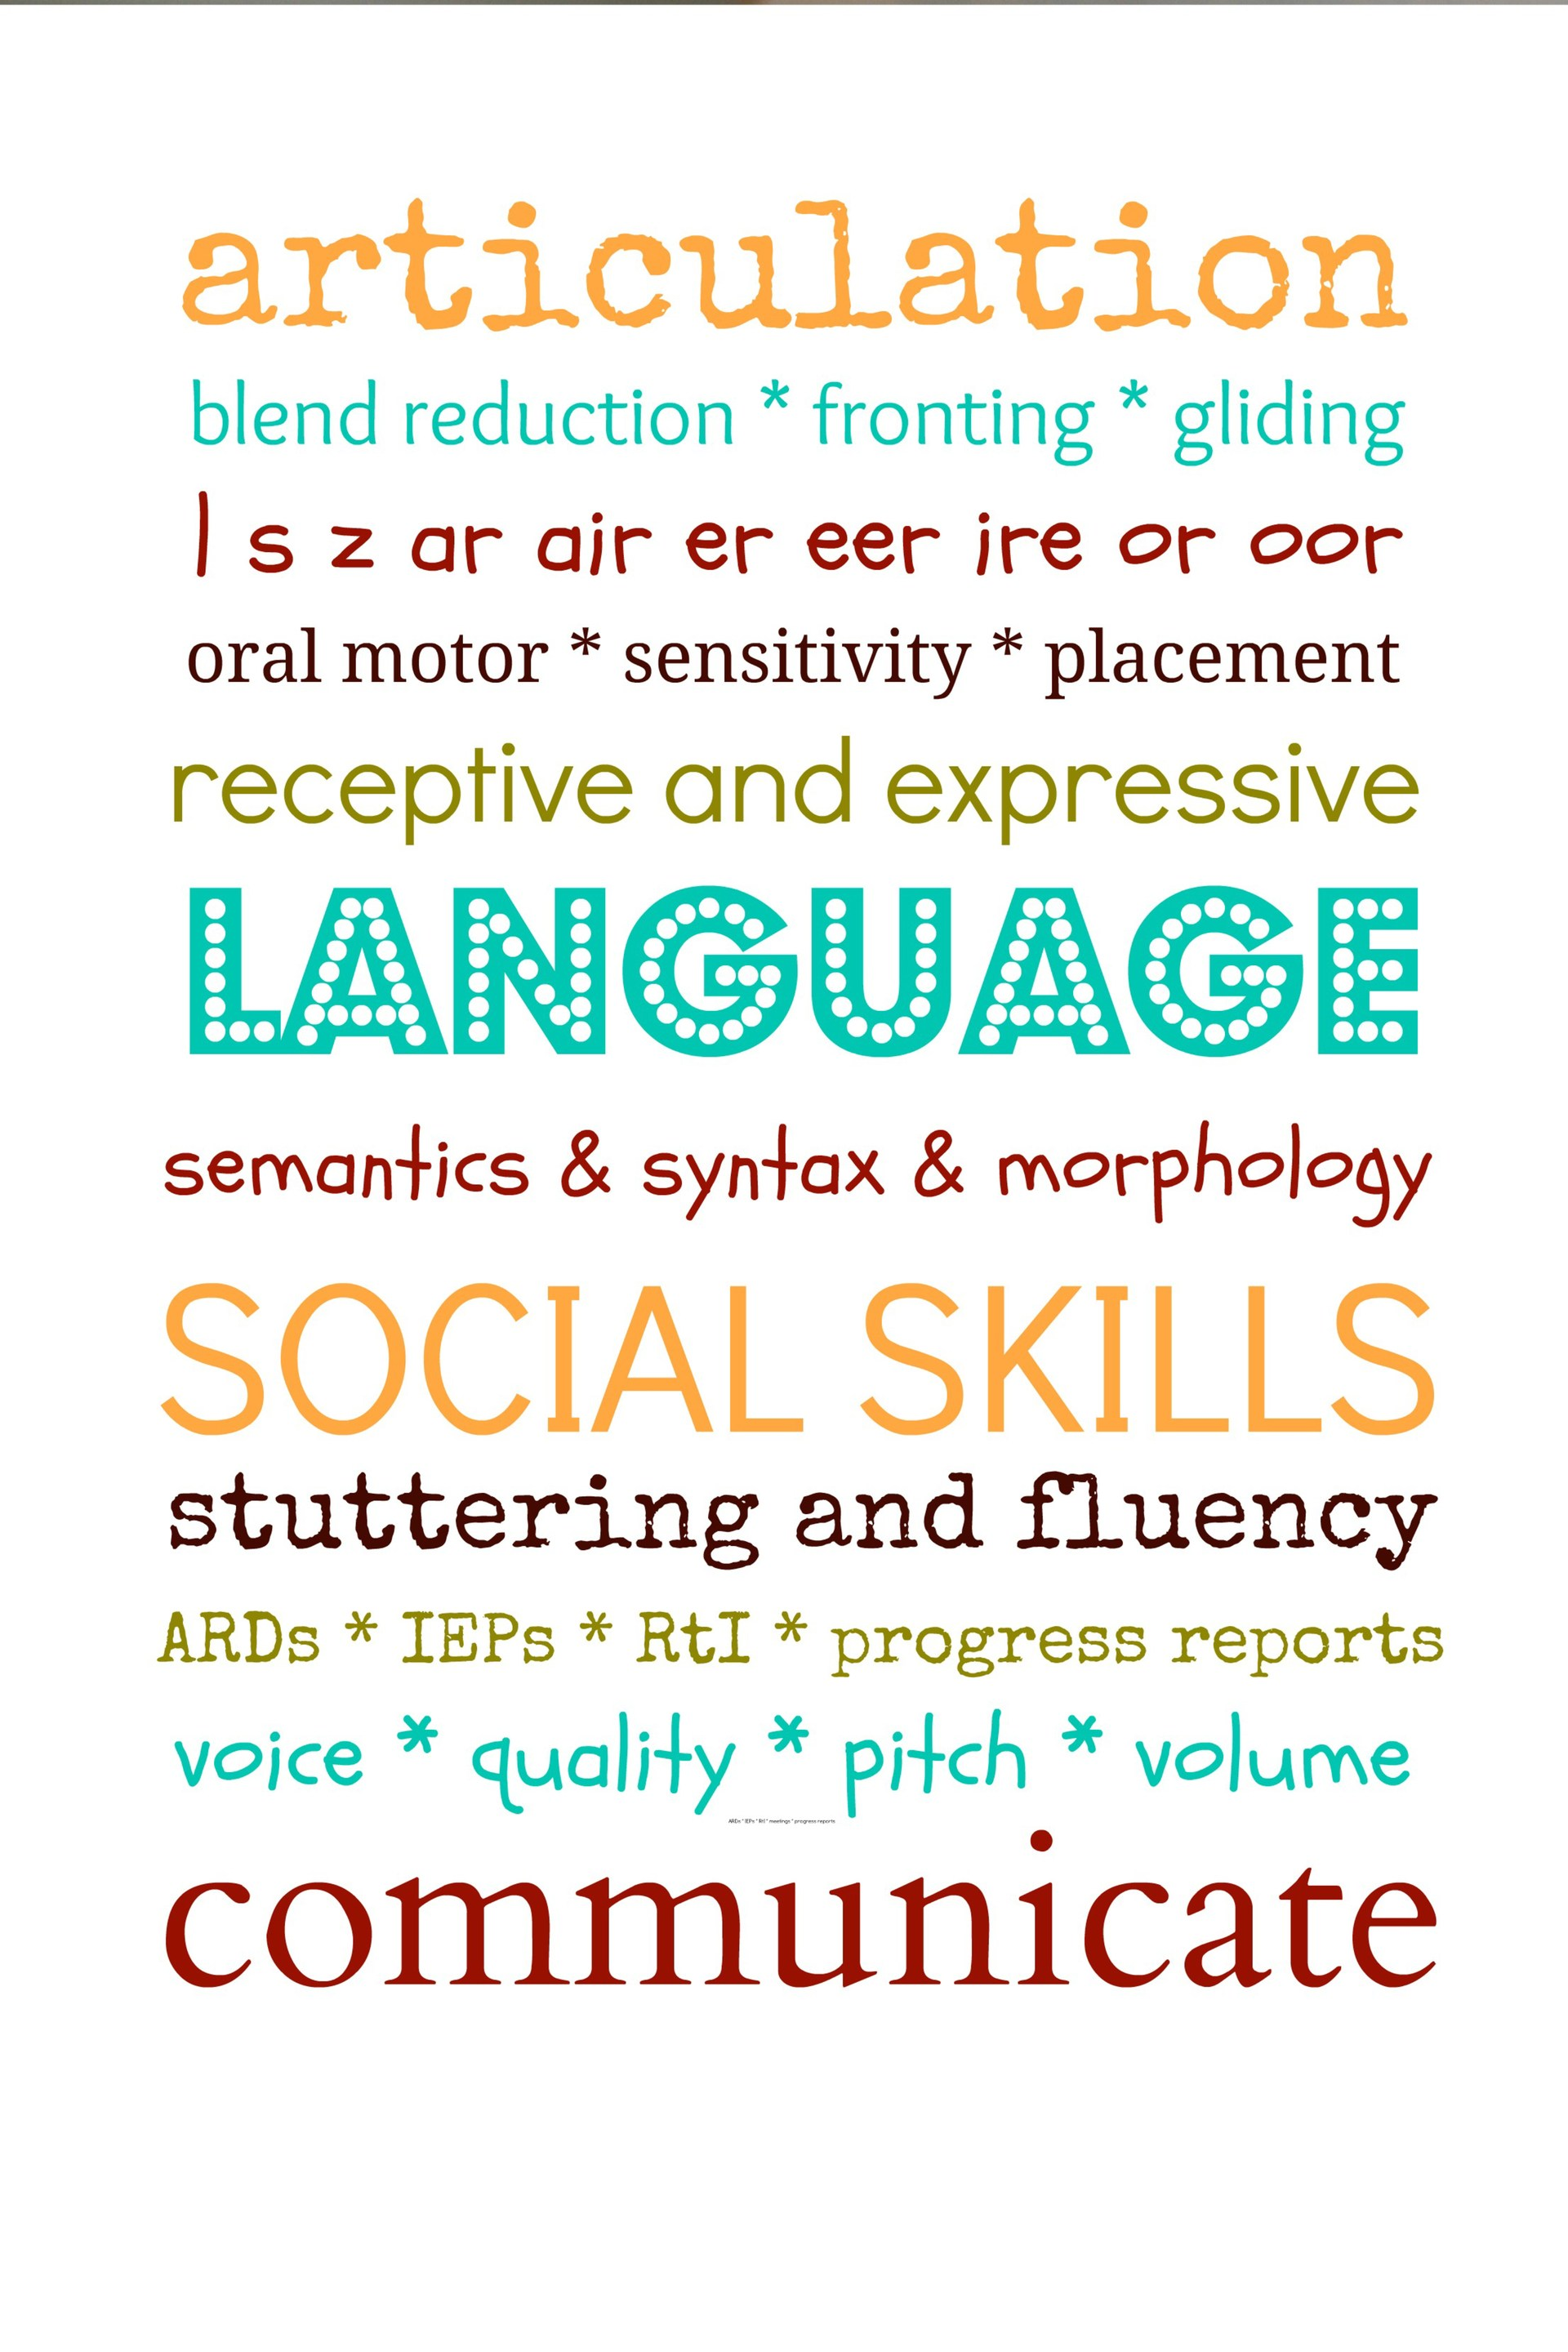 Description of skills a speech-language pathologist might work on